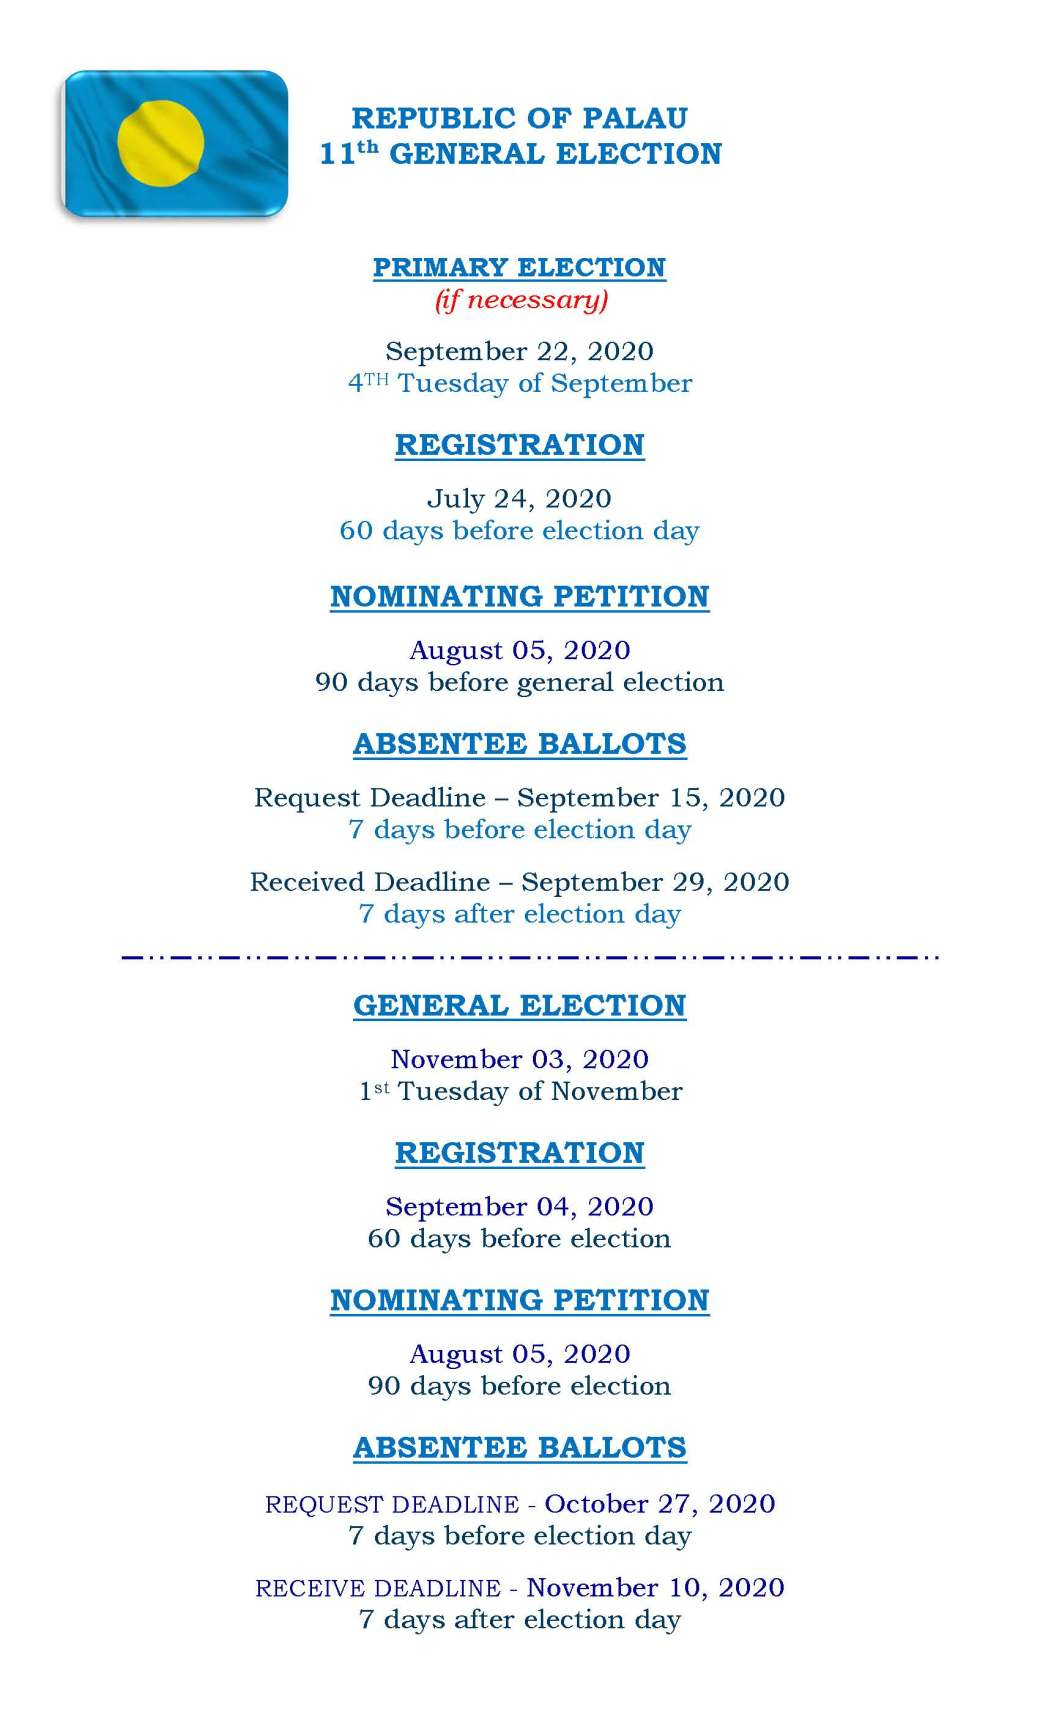 ROP GENERAL ELECTION DATES